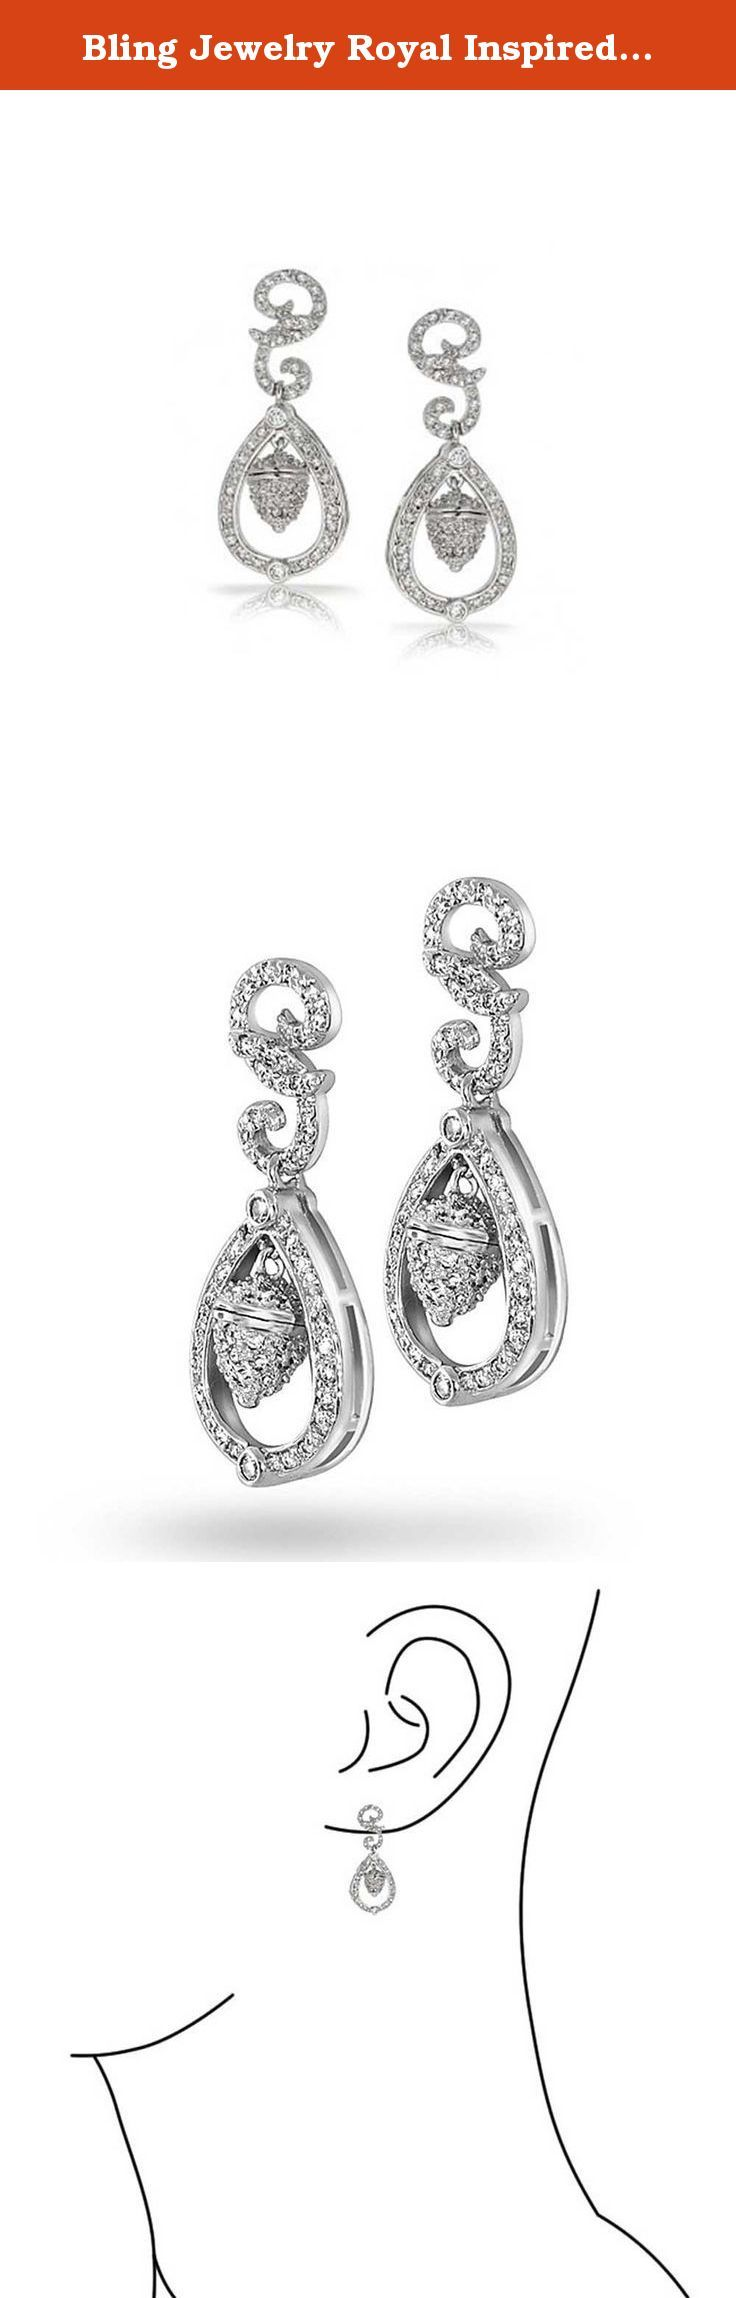 Bling Jewelry Royal Inspired Royal Wedding Acorn CZ Earrings Rhodium Plated. For her much anticipated wedding day, Royal received a magnificent pair of chandelier earrings featuring tiny shimmering acorns as a present from her parents. The acorns are a symbol of England and of strength and they represent the younger Royals. Inspired by Royals decadent earrings, our Rhodium Plated Brass Royal Inspired Royal Wedding Acorn CZ Earrings will leave you looking like royalty. Featuring glamorous…